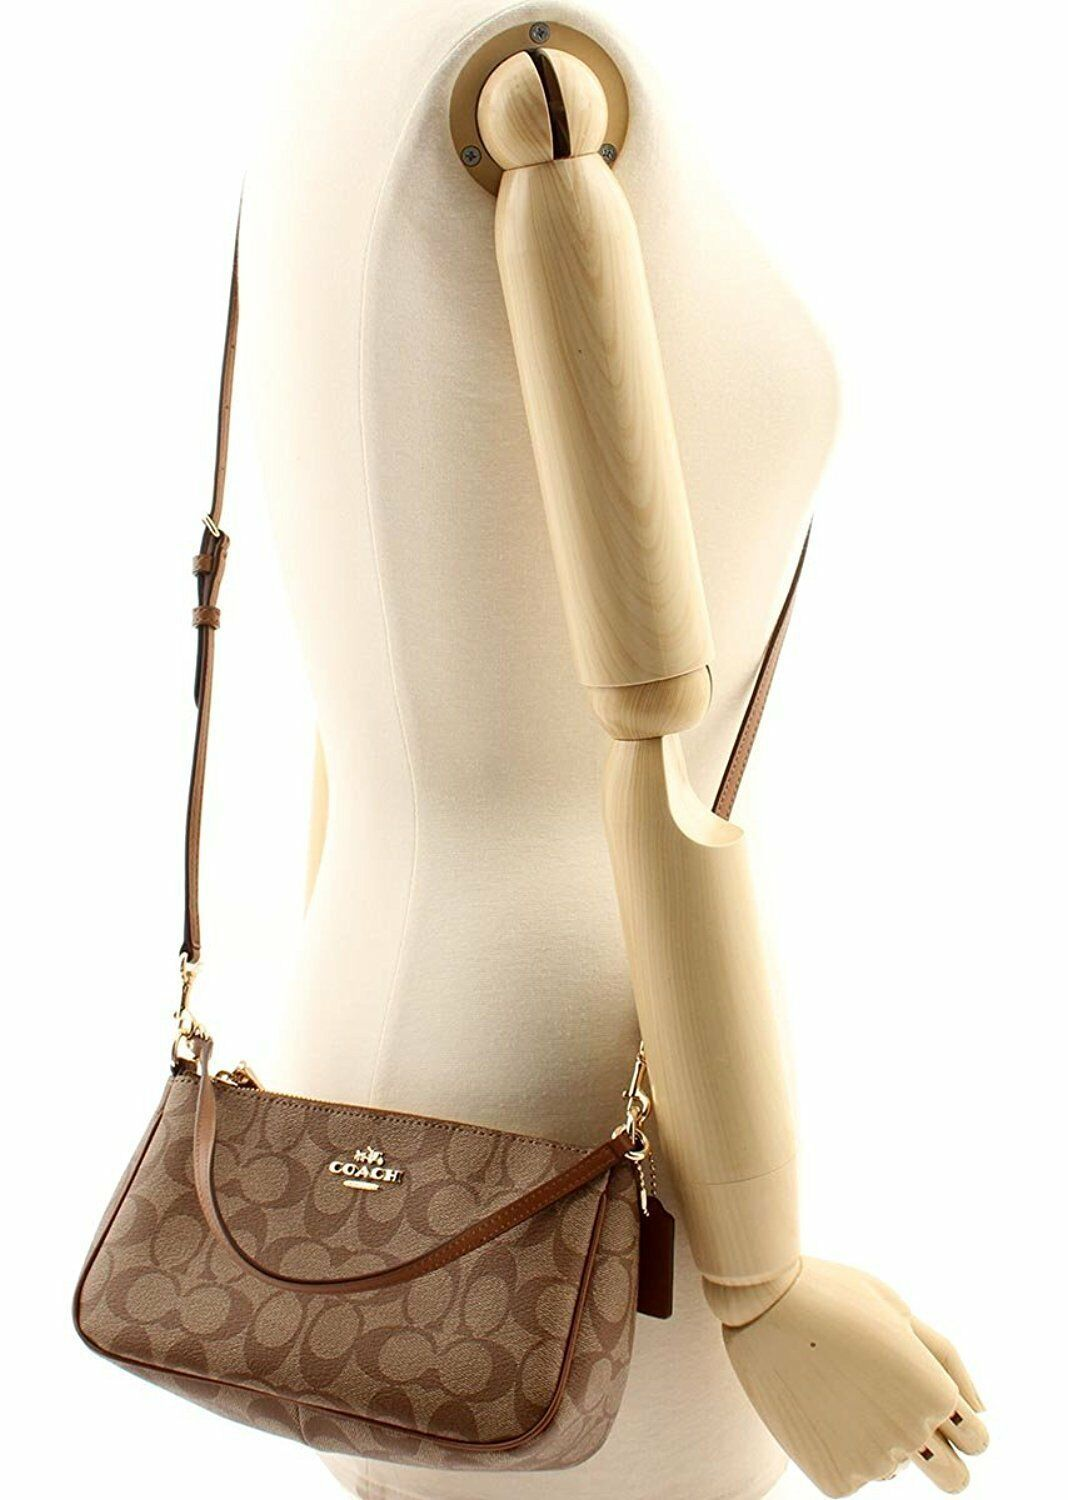 Coach F58321 Signature Messico Top Handle Pouch Purse Crossbody Mini Bag